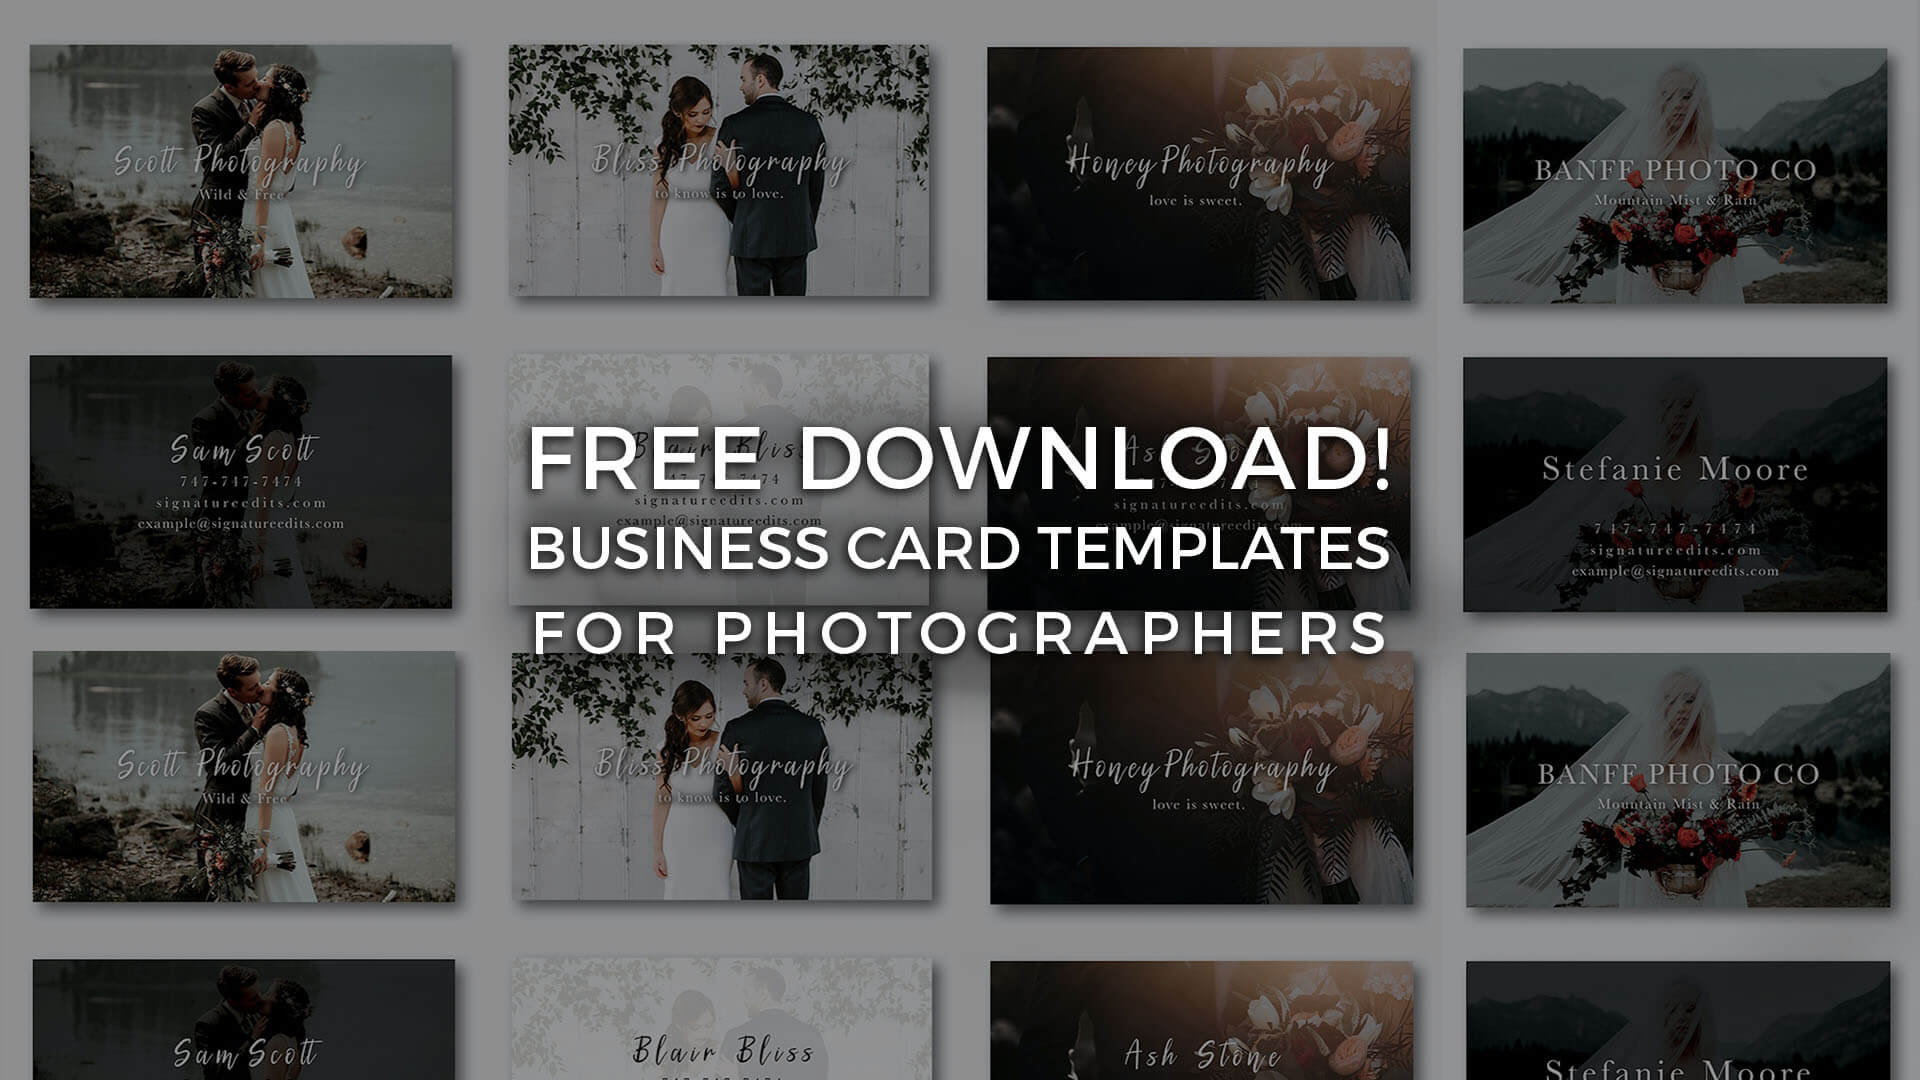 Free Photographer Business Card Templates! - Signature Edits Throughout Photography Business Card Templates Free Download